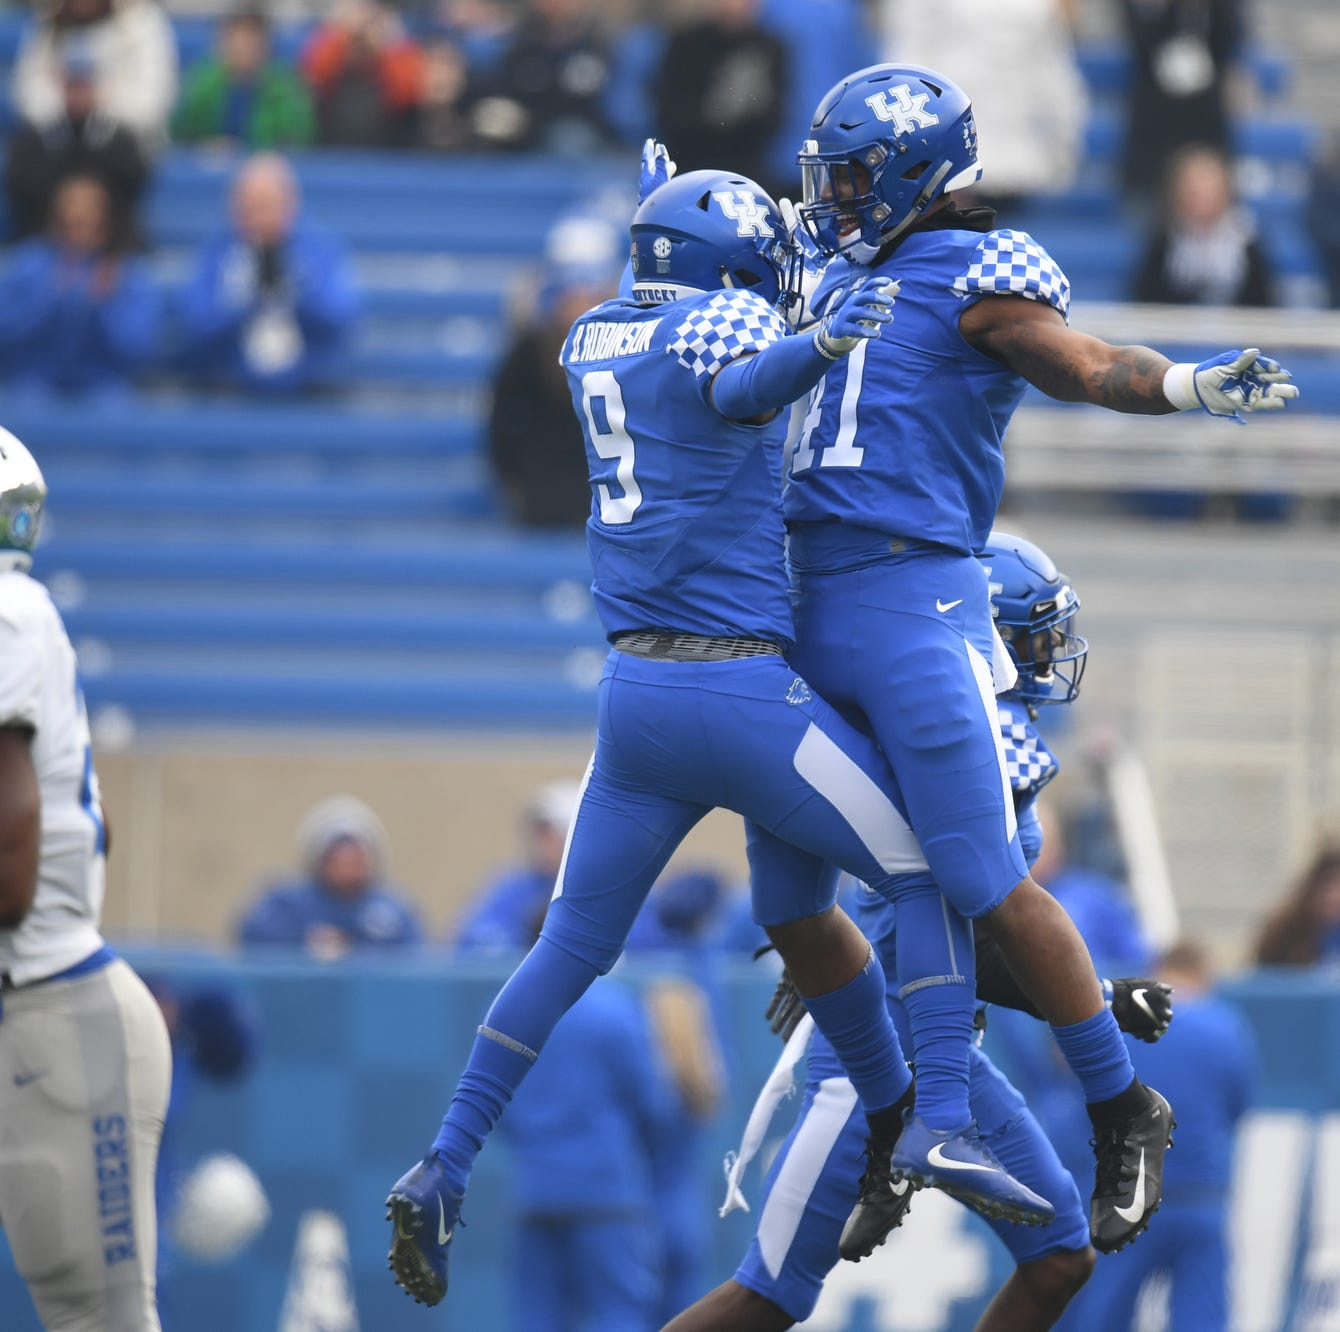 Could Kentucky football still make a New Year's Six bowl game?